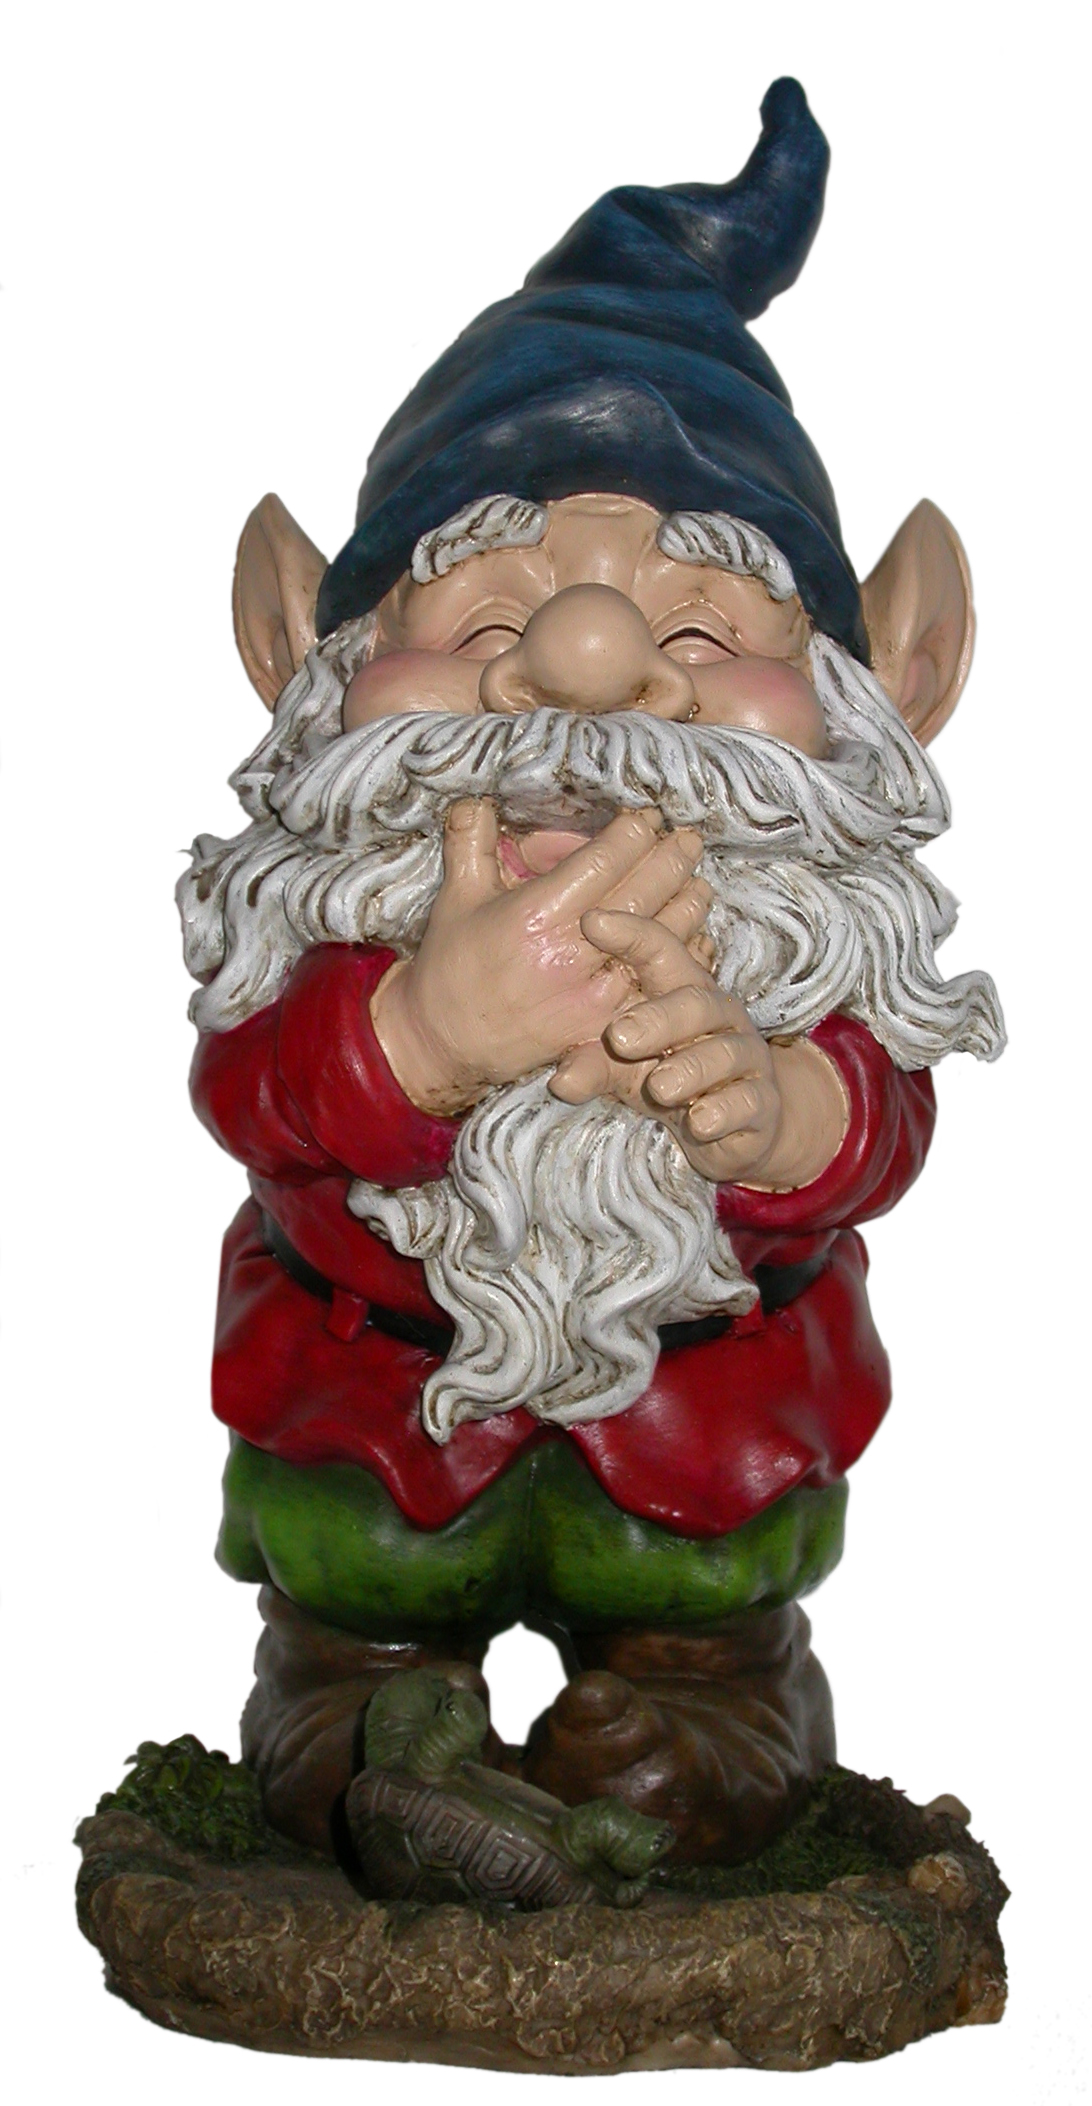 15 Inch Smiling Gnome Statuary by Benzara